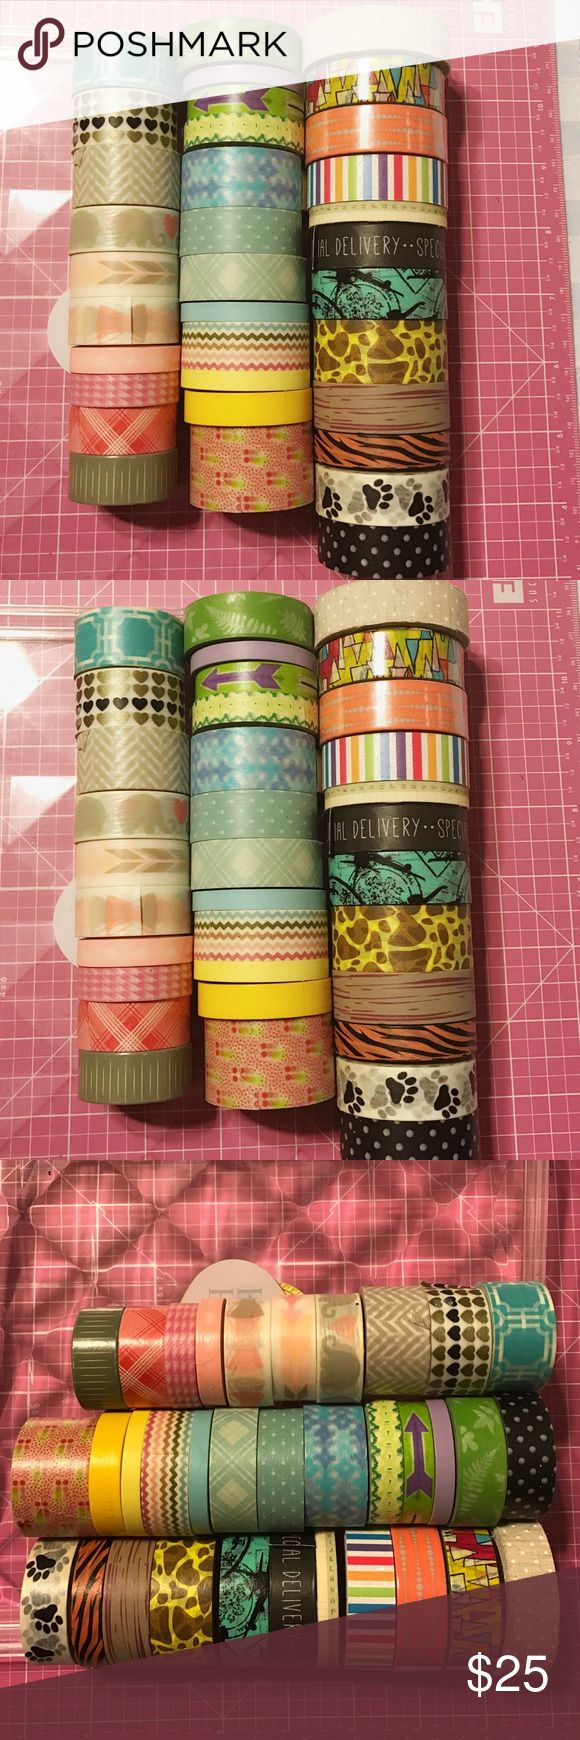 Washi Tape Lot Washi Tape Lot great to use for scrapbooking, planning or Crafty Project. Total of 35 washi tape some used and some brand new. Combination of different place example Micheal's Craft Store, Marshall's, AC Moore, Hobby Lobby and Dollar Tree. Other